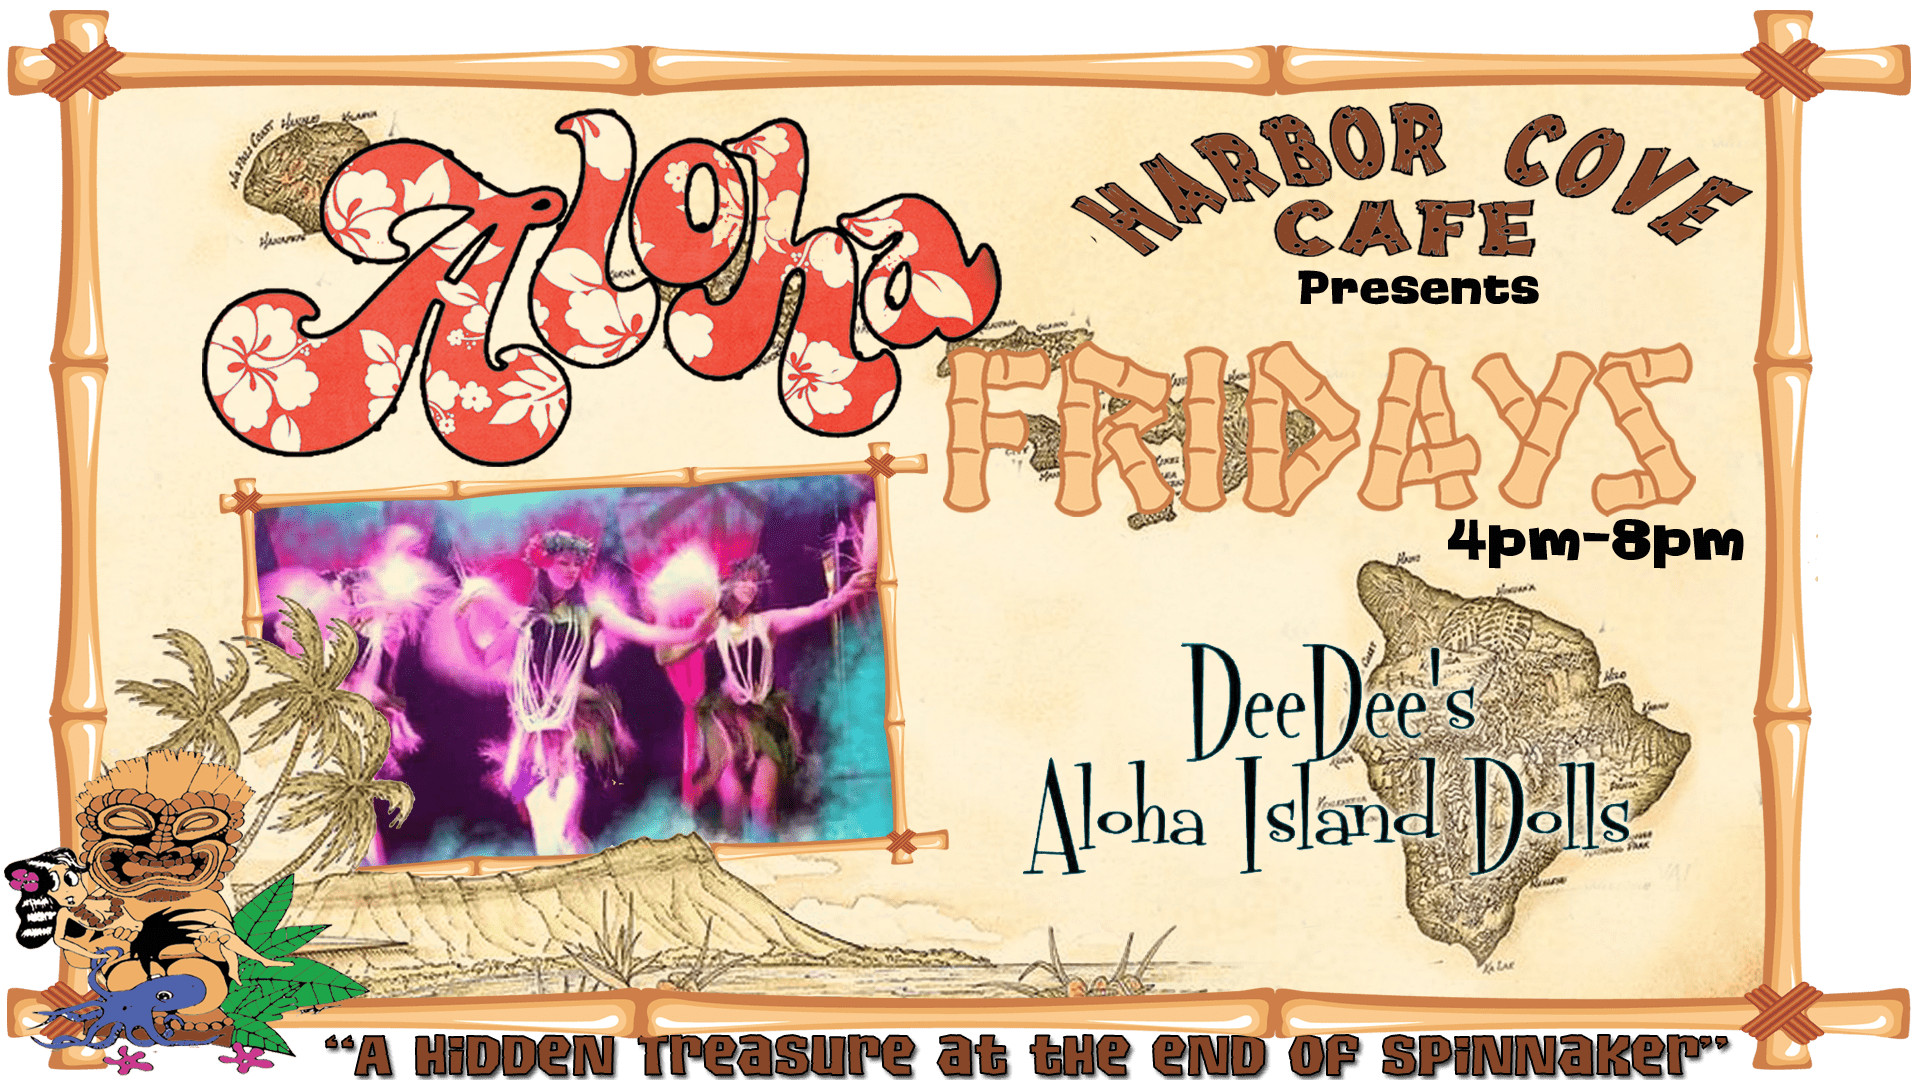 aloha Fridays at harbor cove cafe with dee dees aloha island dolls